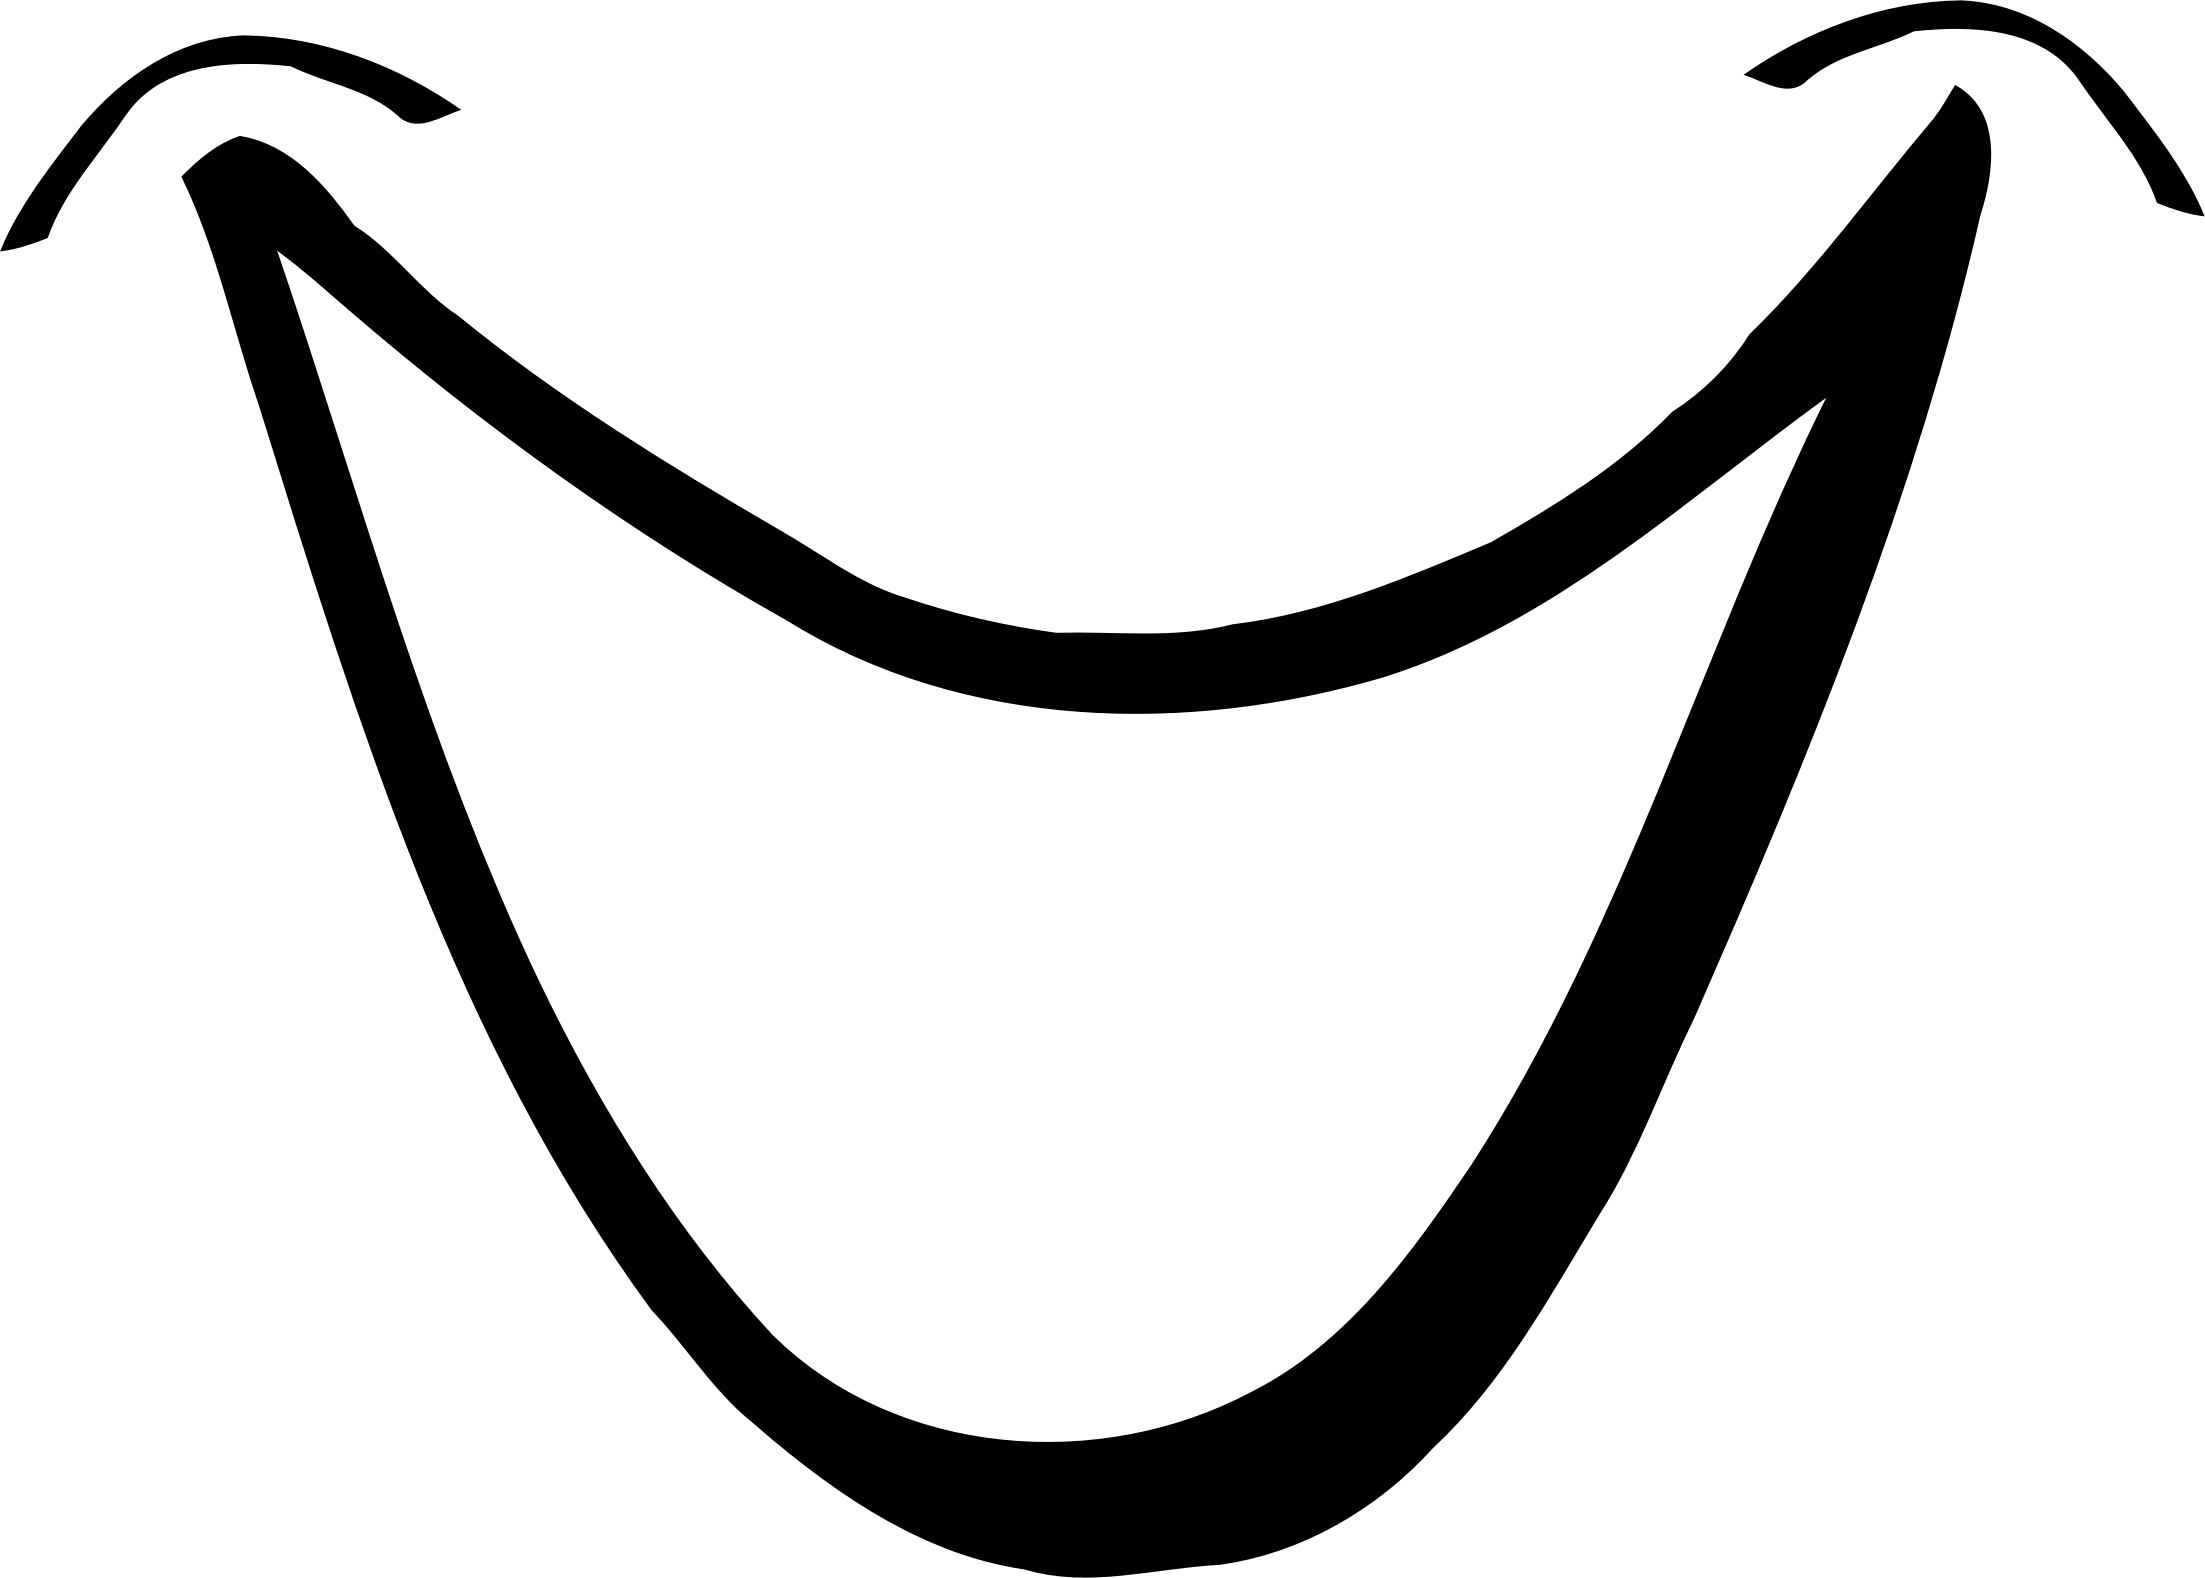 mouth black and white clipart - Clipground